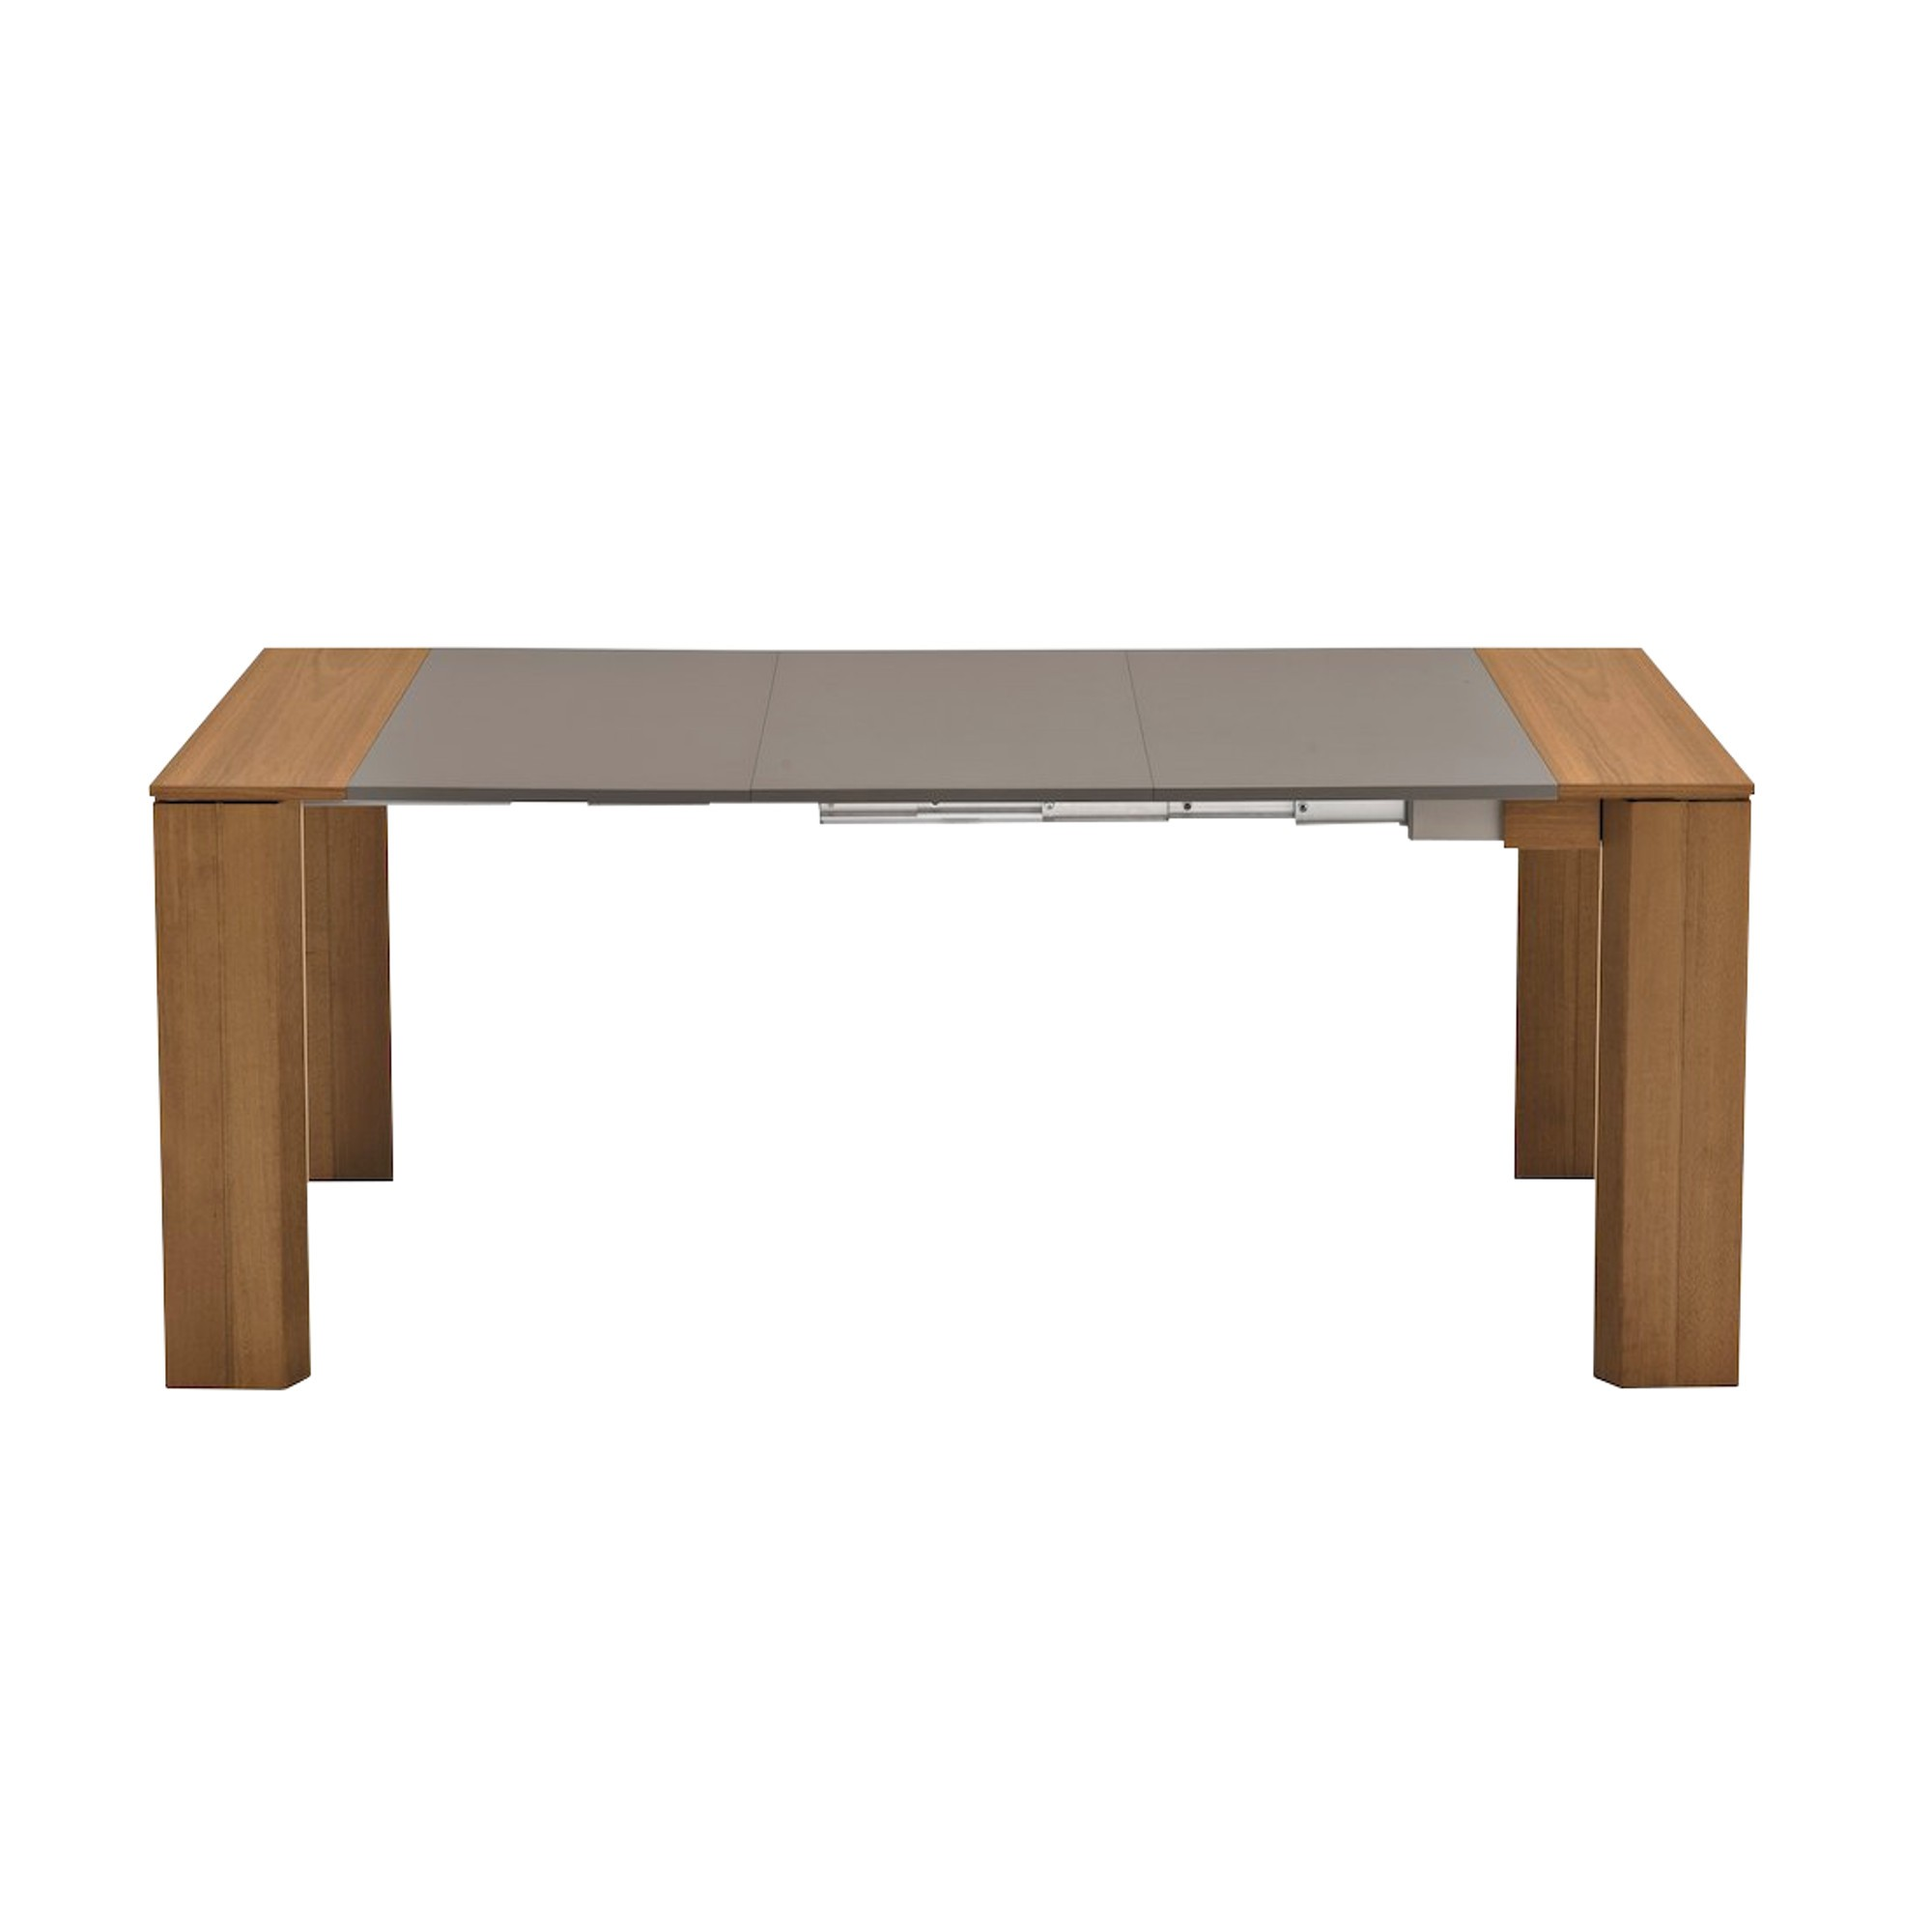 Consolle Calligaris Mistery.New Mistery Extending Console Tables Tables Connubia